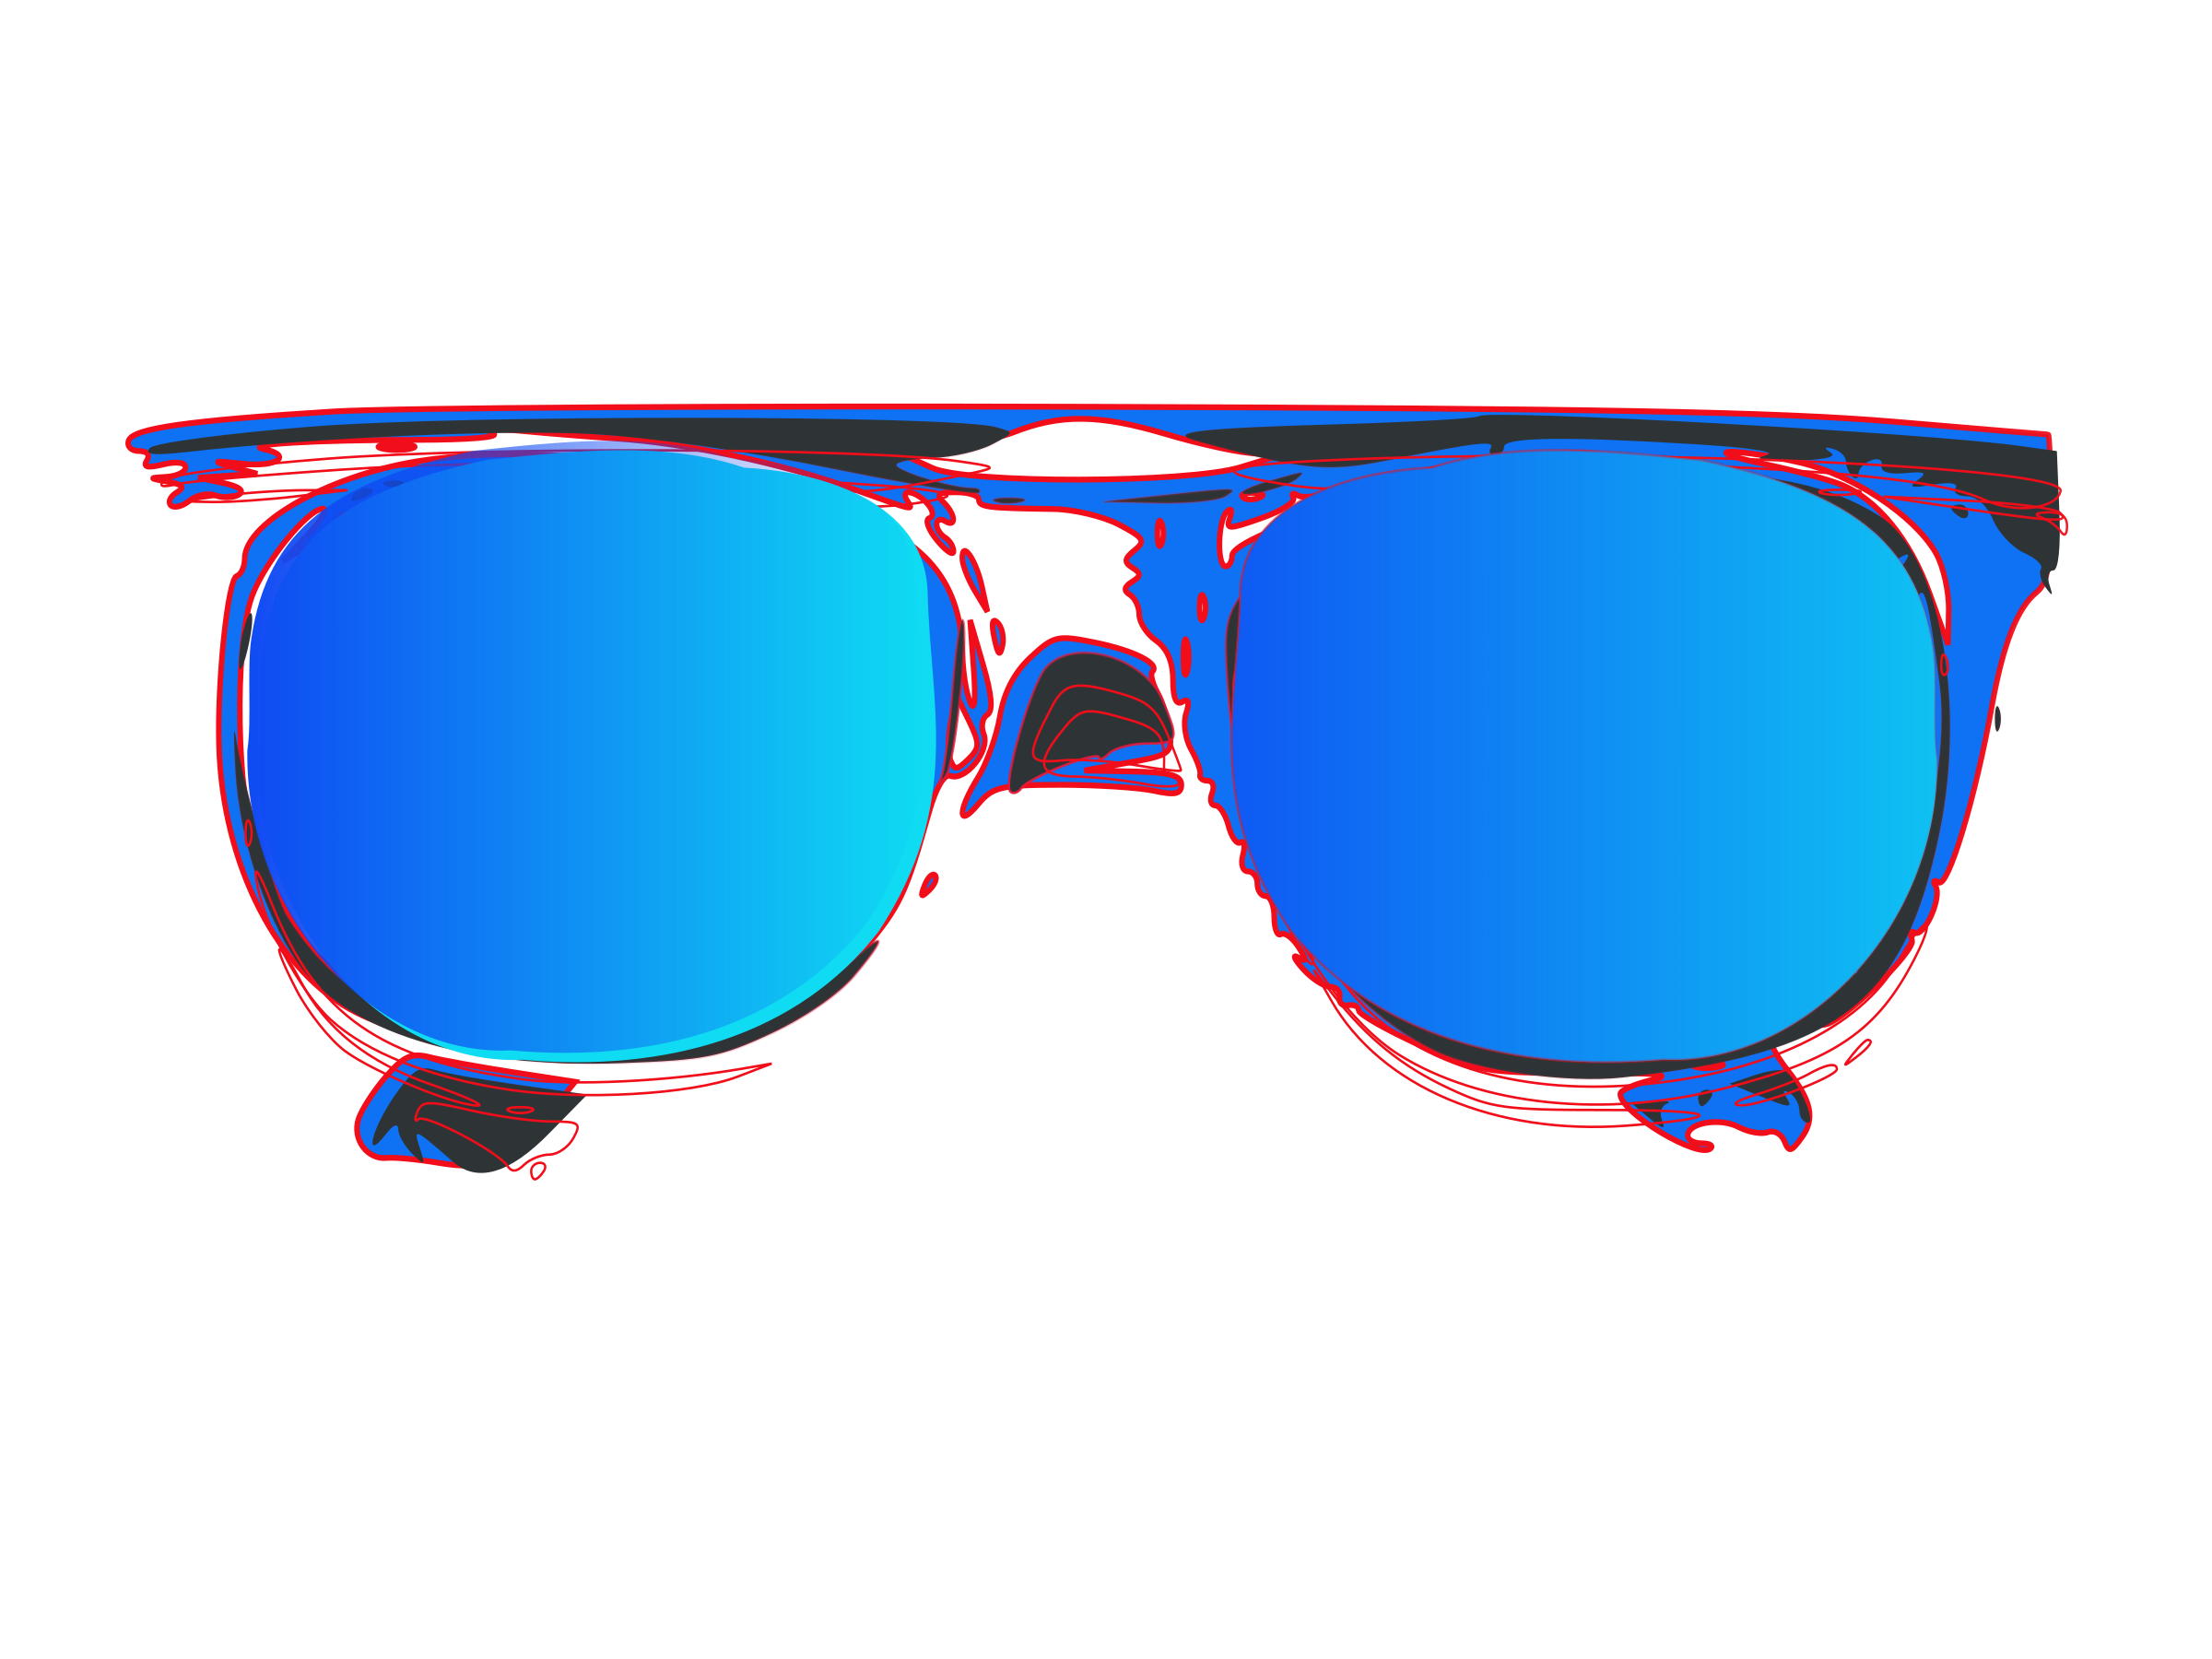 Sun glasses clipart vector royalty free library Clipart - sunglasses vector royalty free library